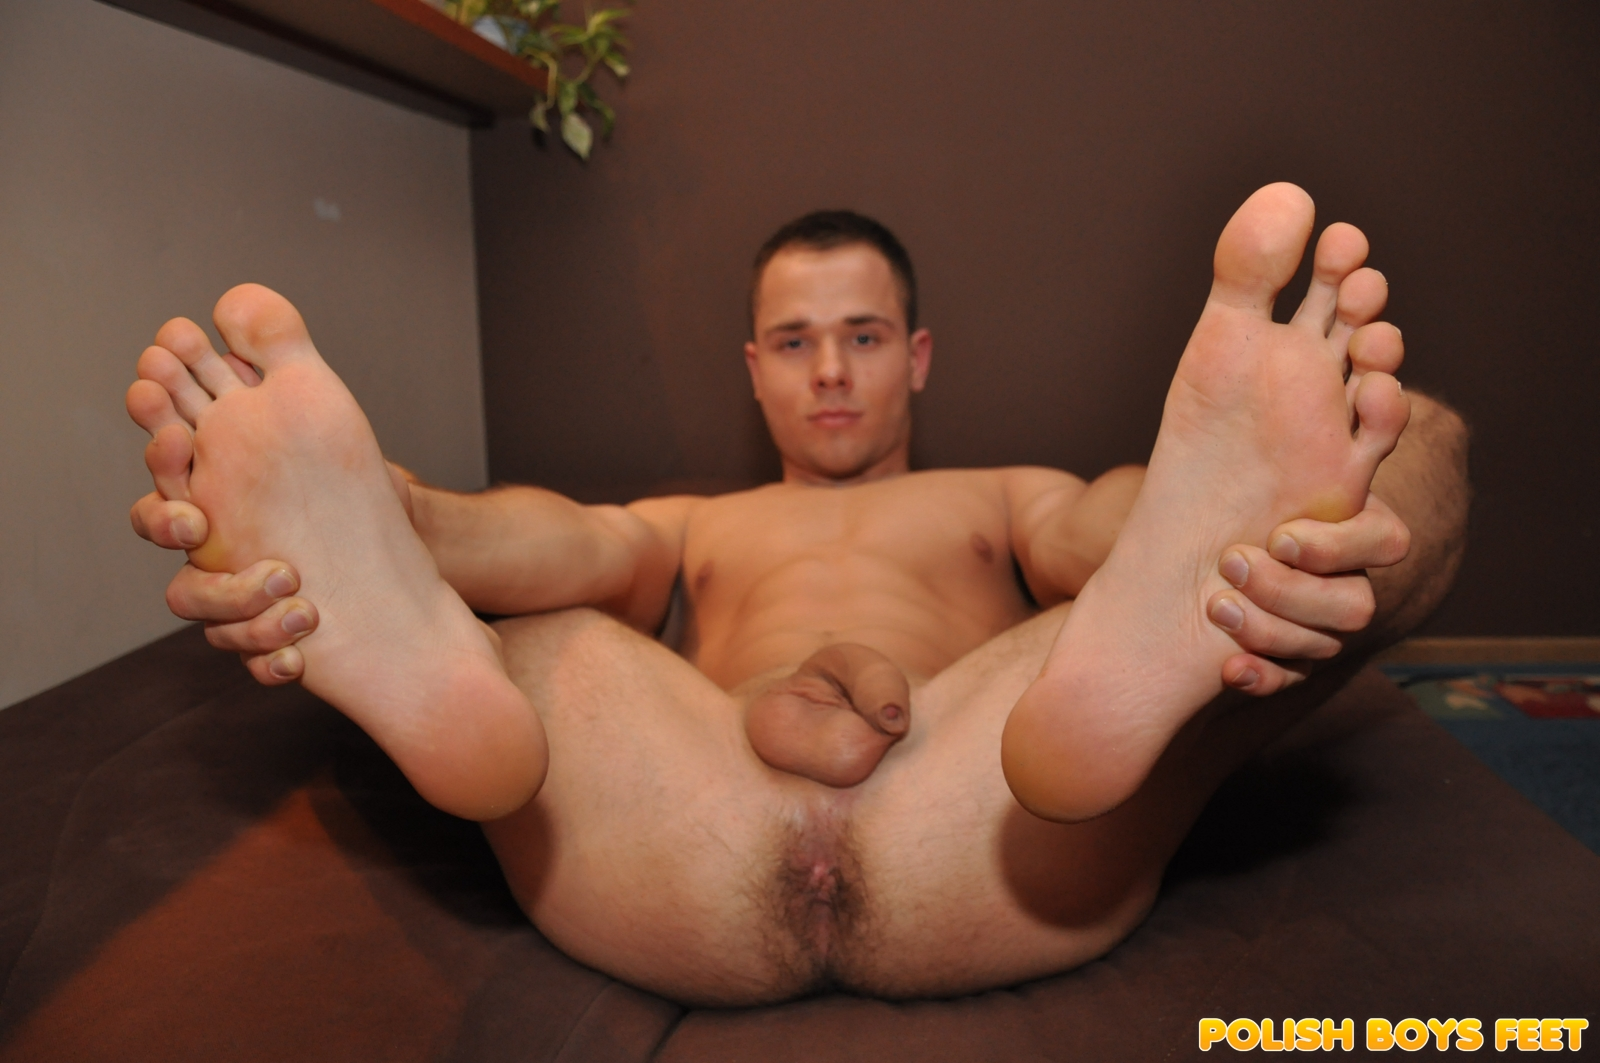 Gay Foot Fetish Pics - Gay-6423